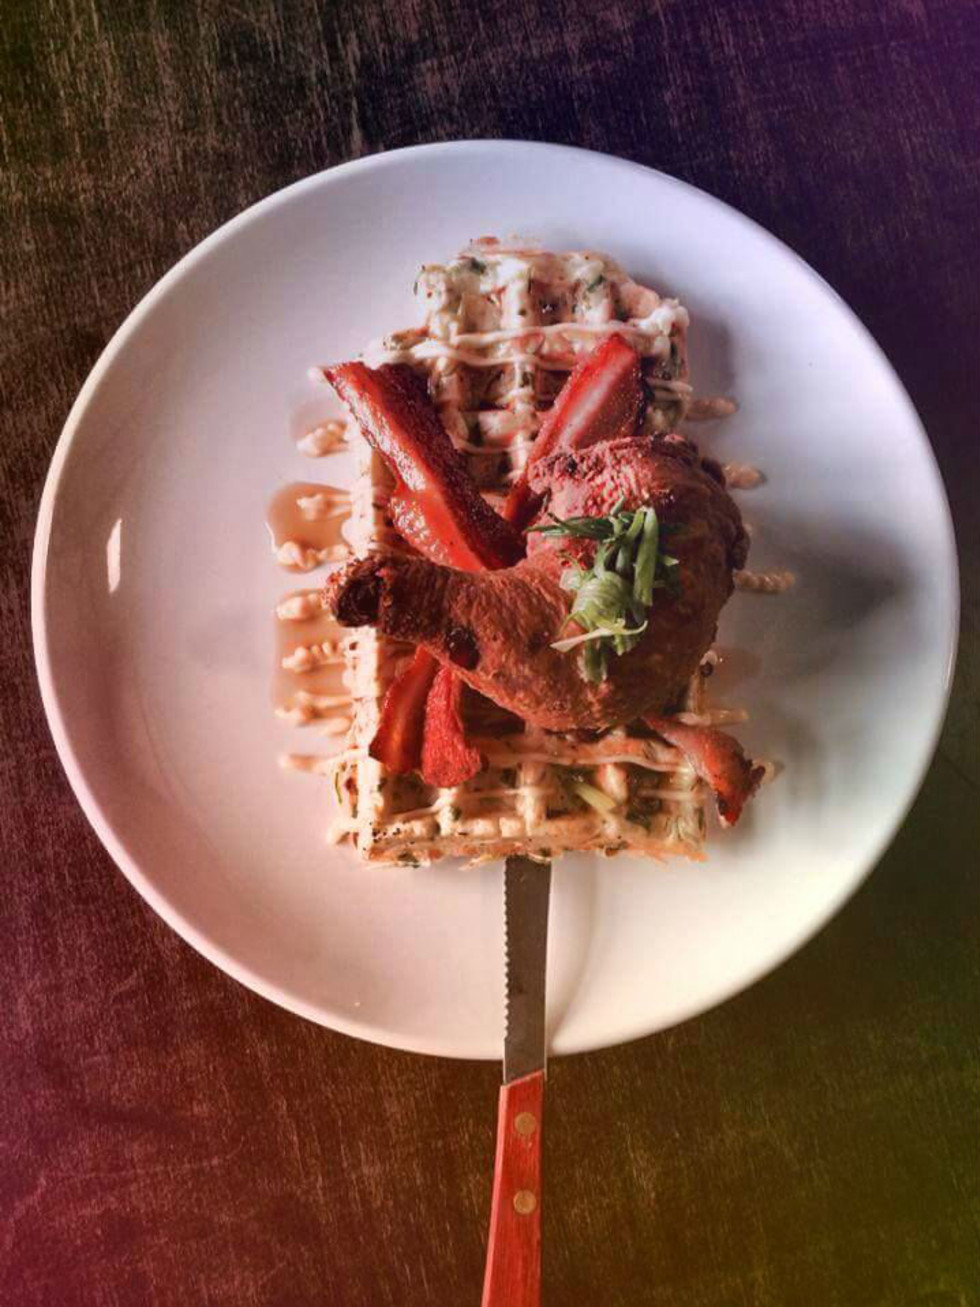 The Hoppy Monk chicken and waffles